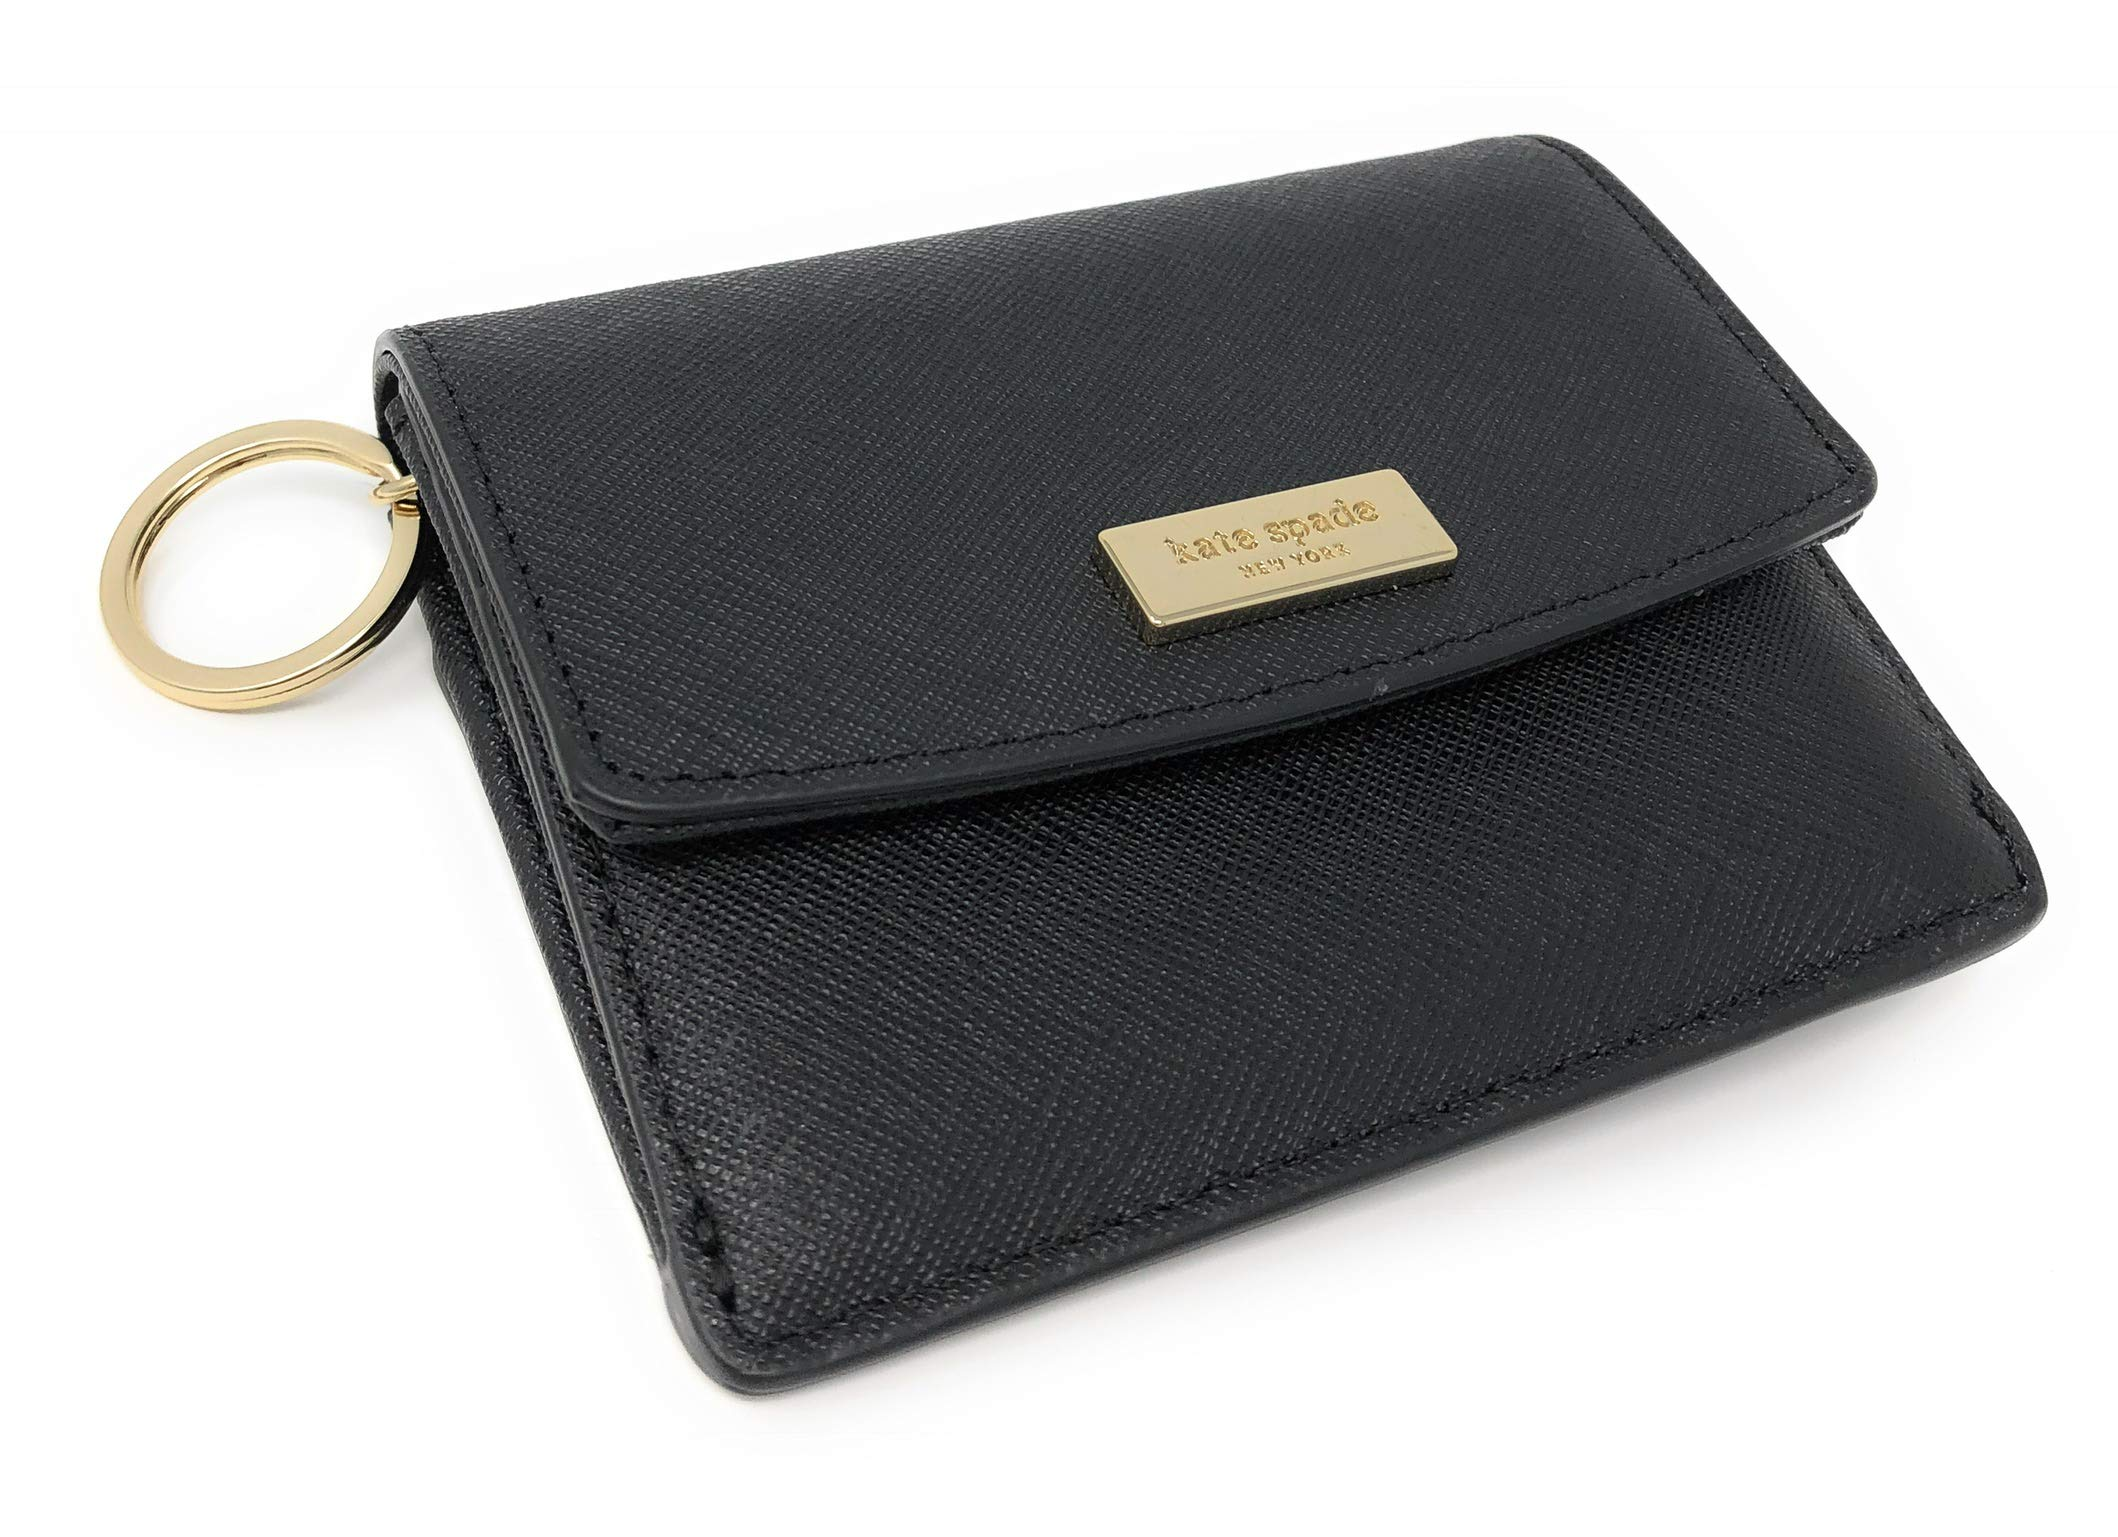 Kate Spade New York Laurel Way Petty Wallet Id Key Ring Holder Black